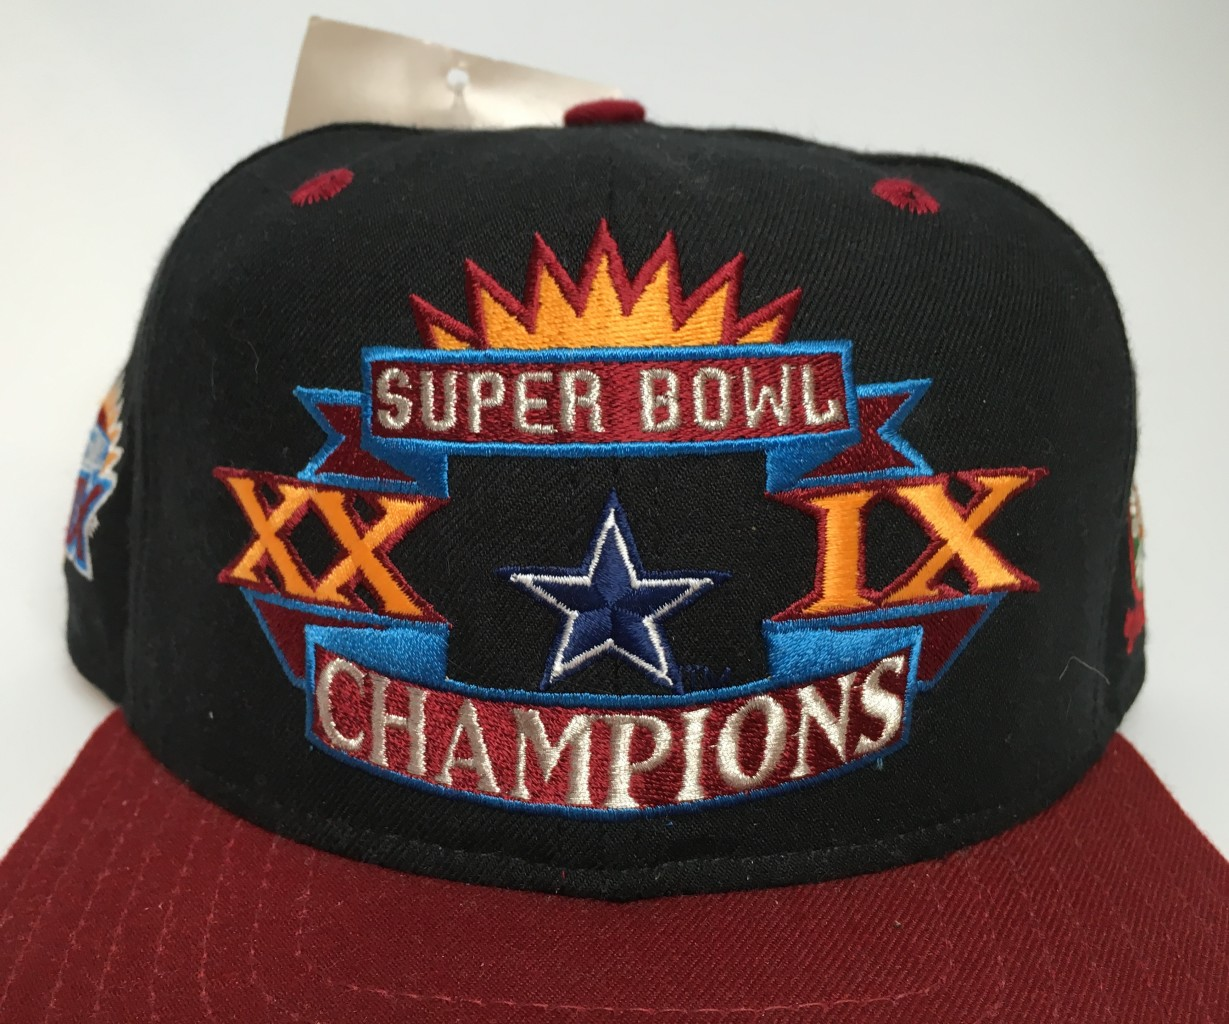 5194e35a8a8 ireland dallas cowboys 5x super bowl champions new era snapback hat cap  navy blue 90338 b9372  sweden misprint super bowl champions dallas cowboys  snapback ...